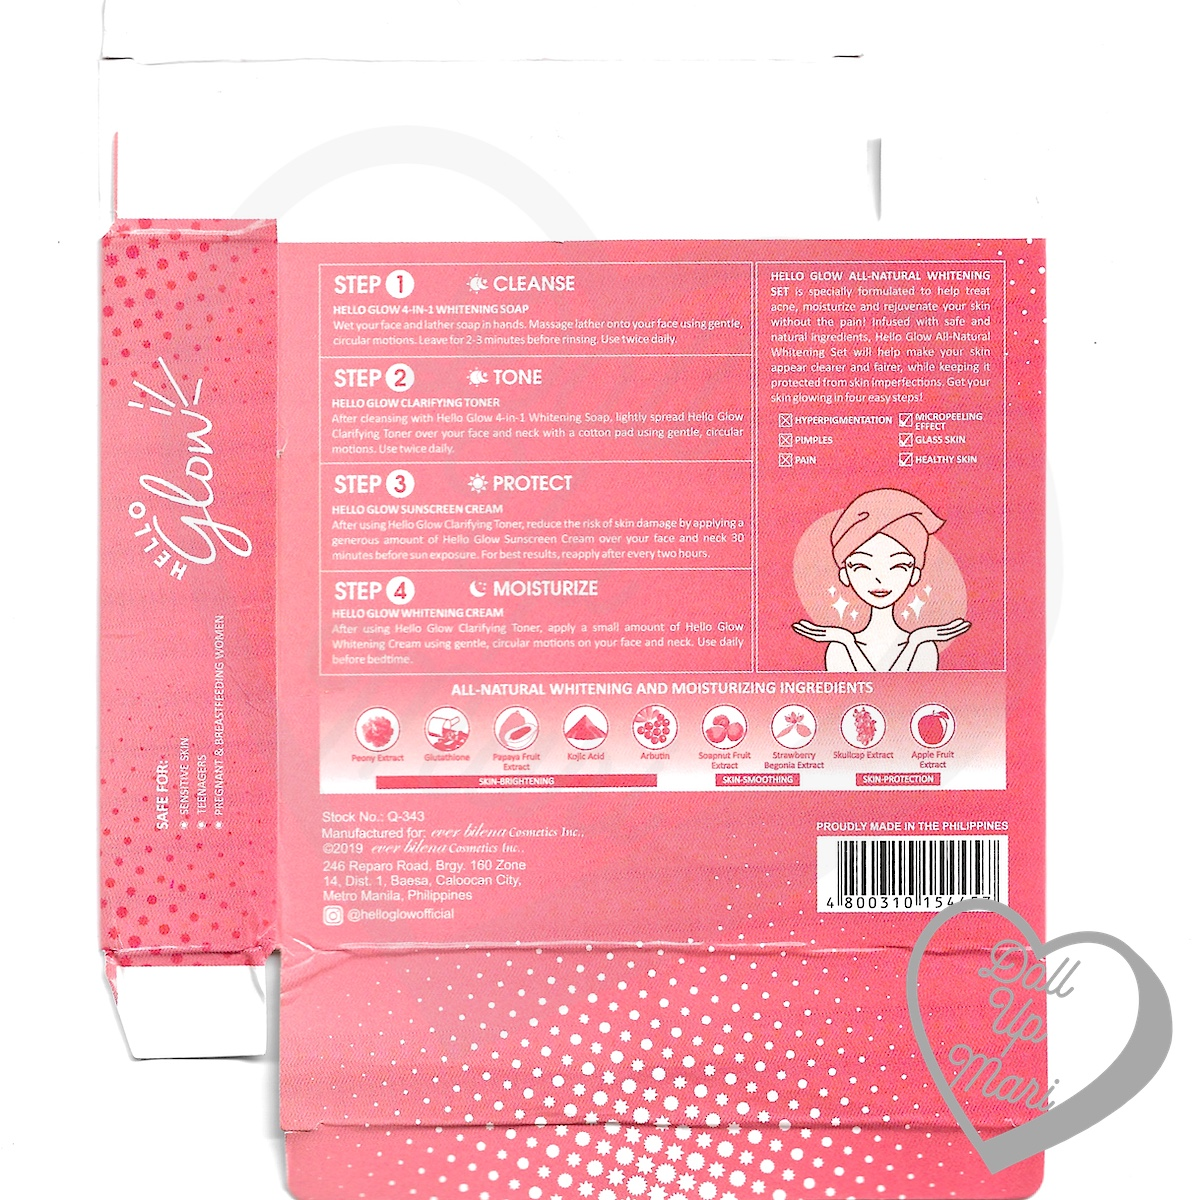 Hello Glow by Ever Bilena Box Rear Scan featuring ingredients, directions, and product information.